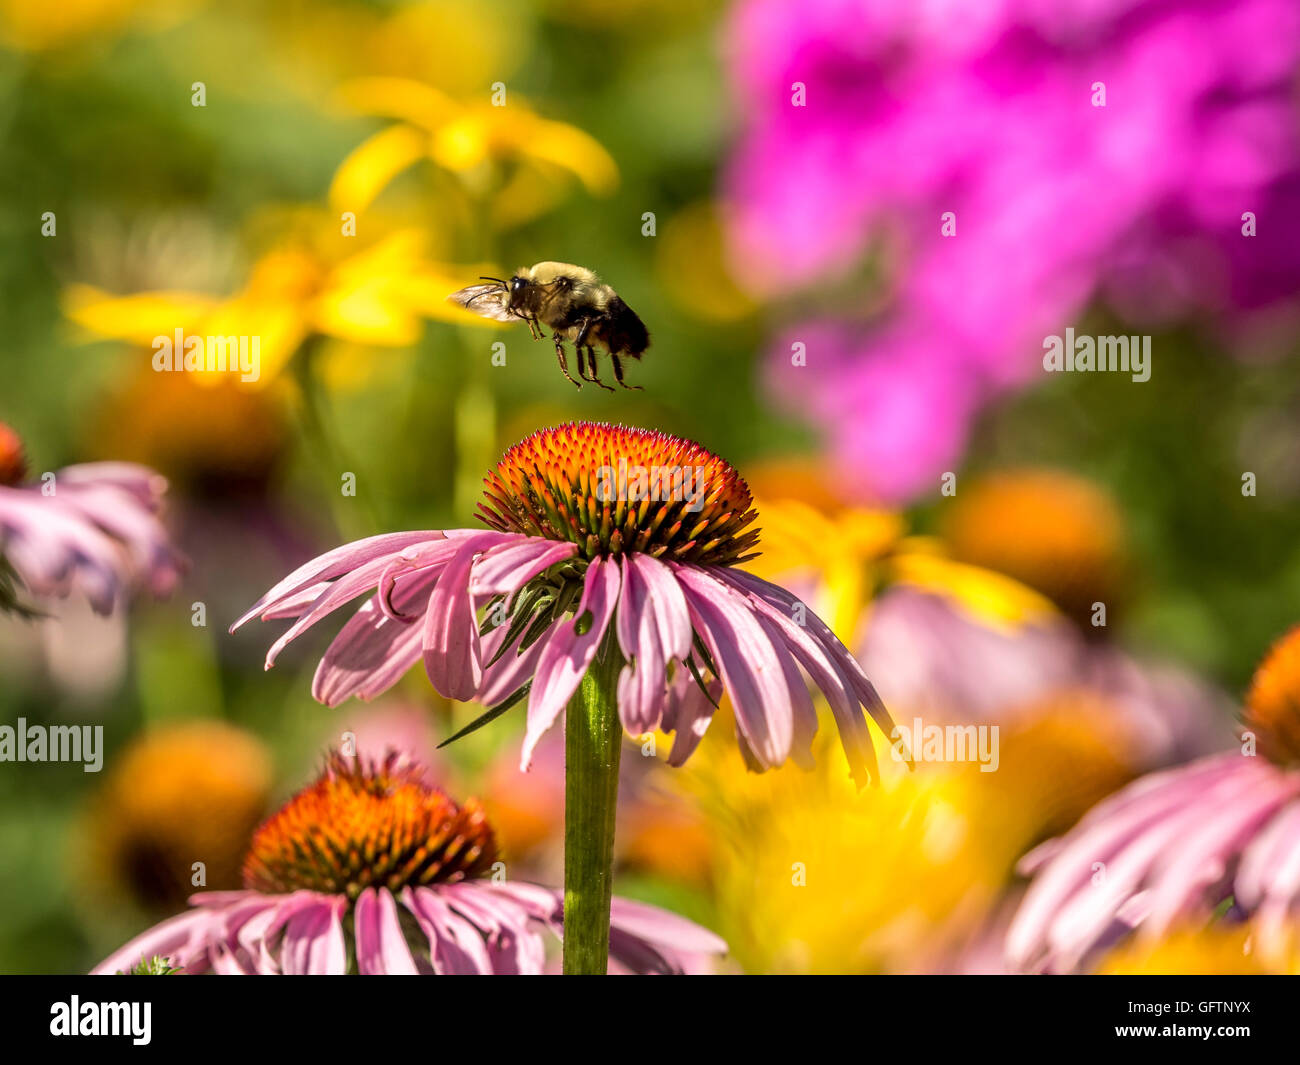 bumblebee, also written bumble bee, is any member of the bee genus Bombus, in the family Apidae - Stock Image